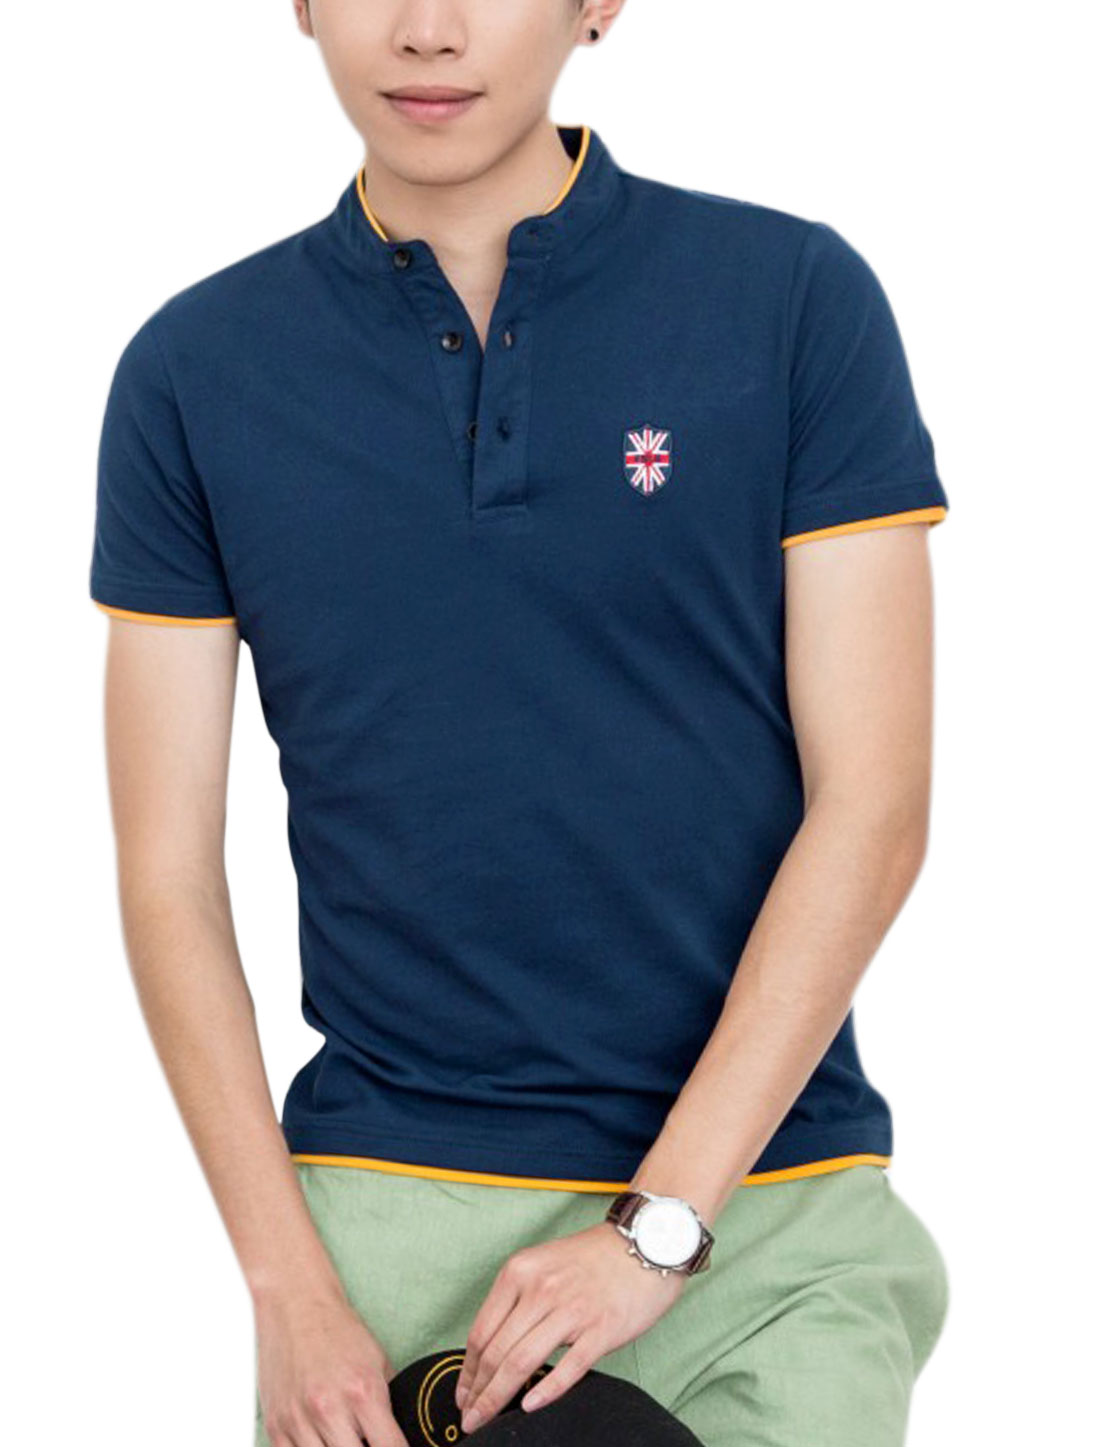 Men 1/4 Placket Layered Hem Trendy Polo Shirt Navy Blue M